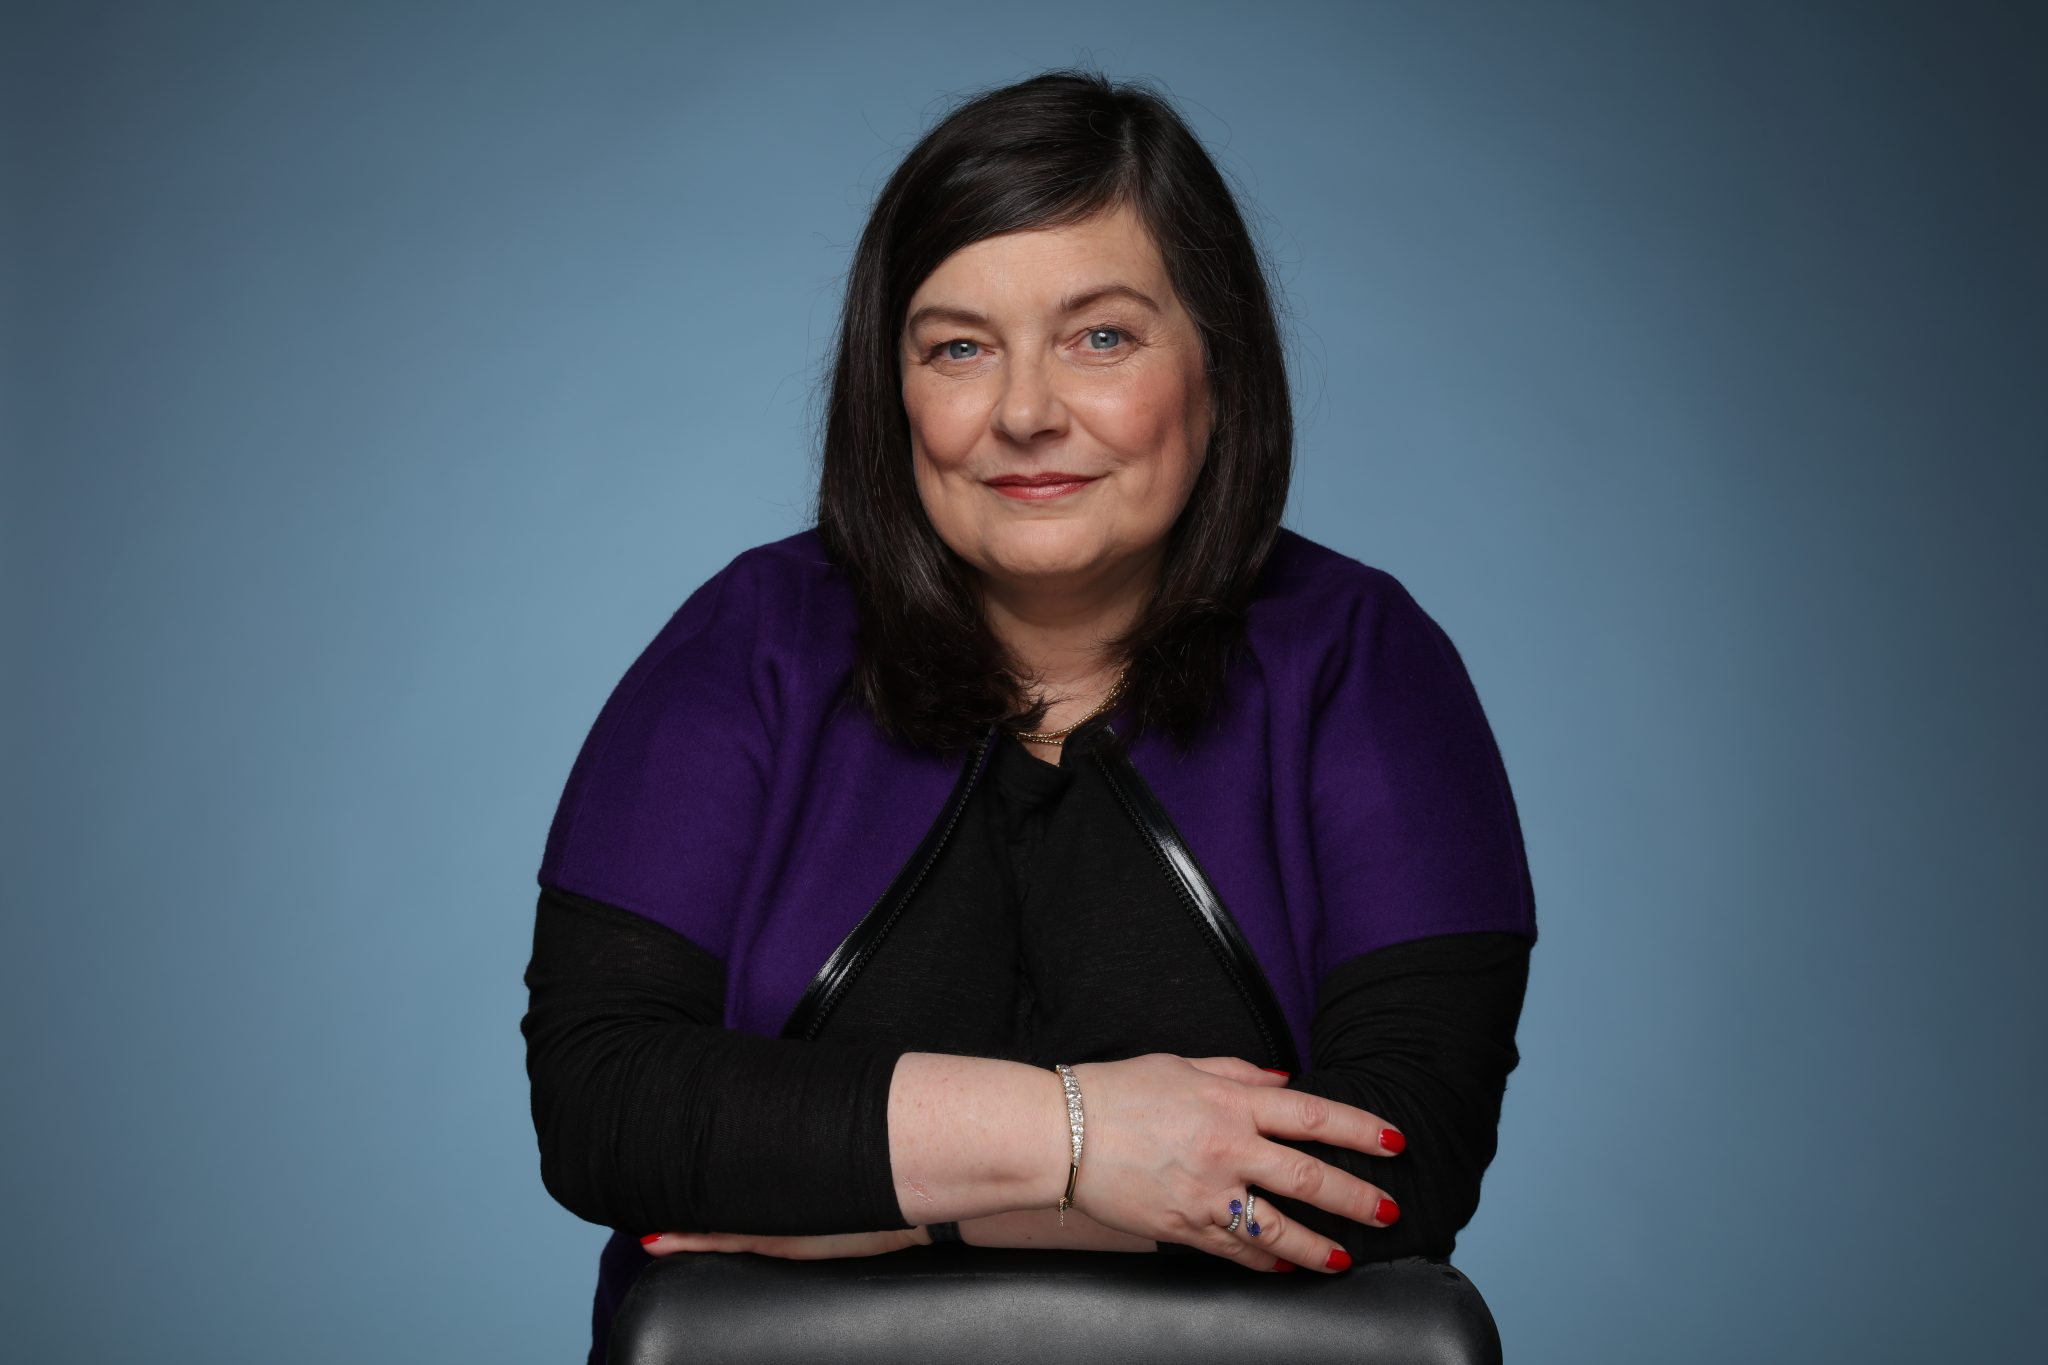 Anne Boden Starling Bank Founder